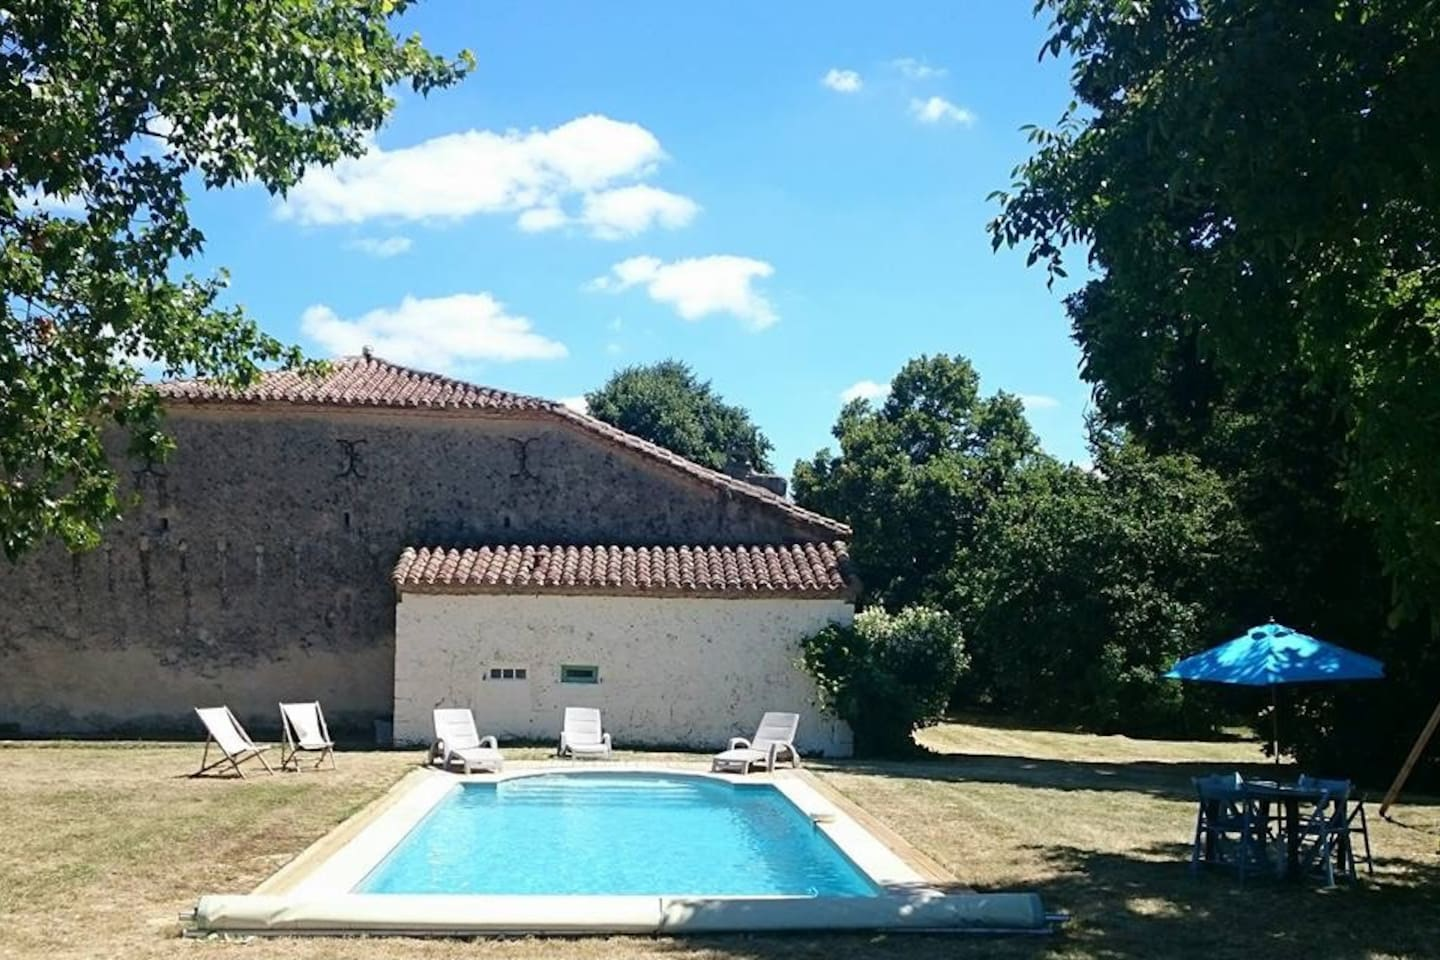 Our 16th Century Gascon farmhouse is the perfect place for a lazy pool holiday, an active cycling holiday or as a base to explore the delights of Gascony in South West France.